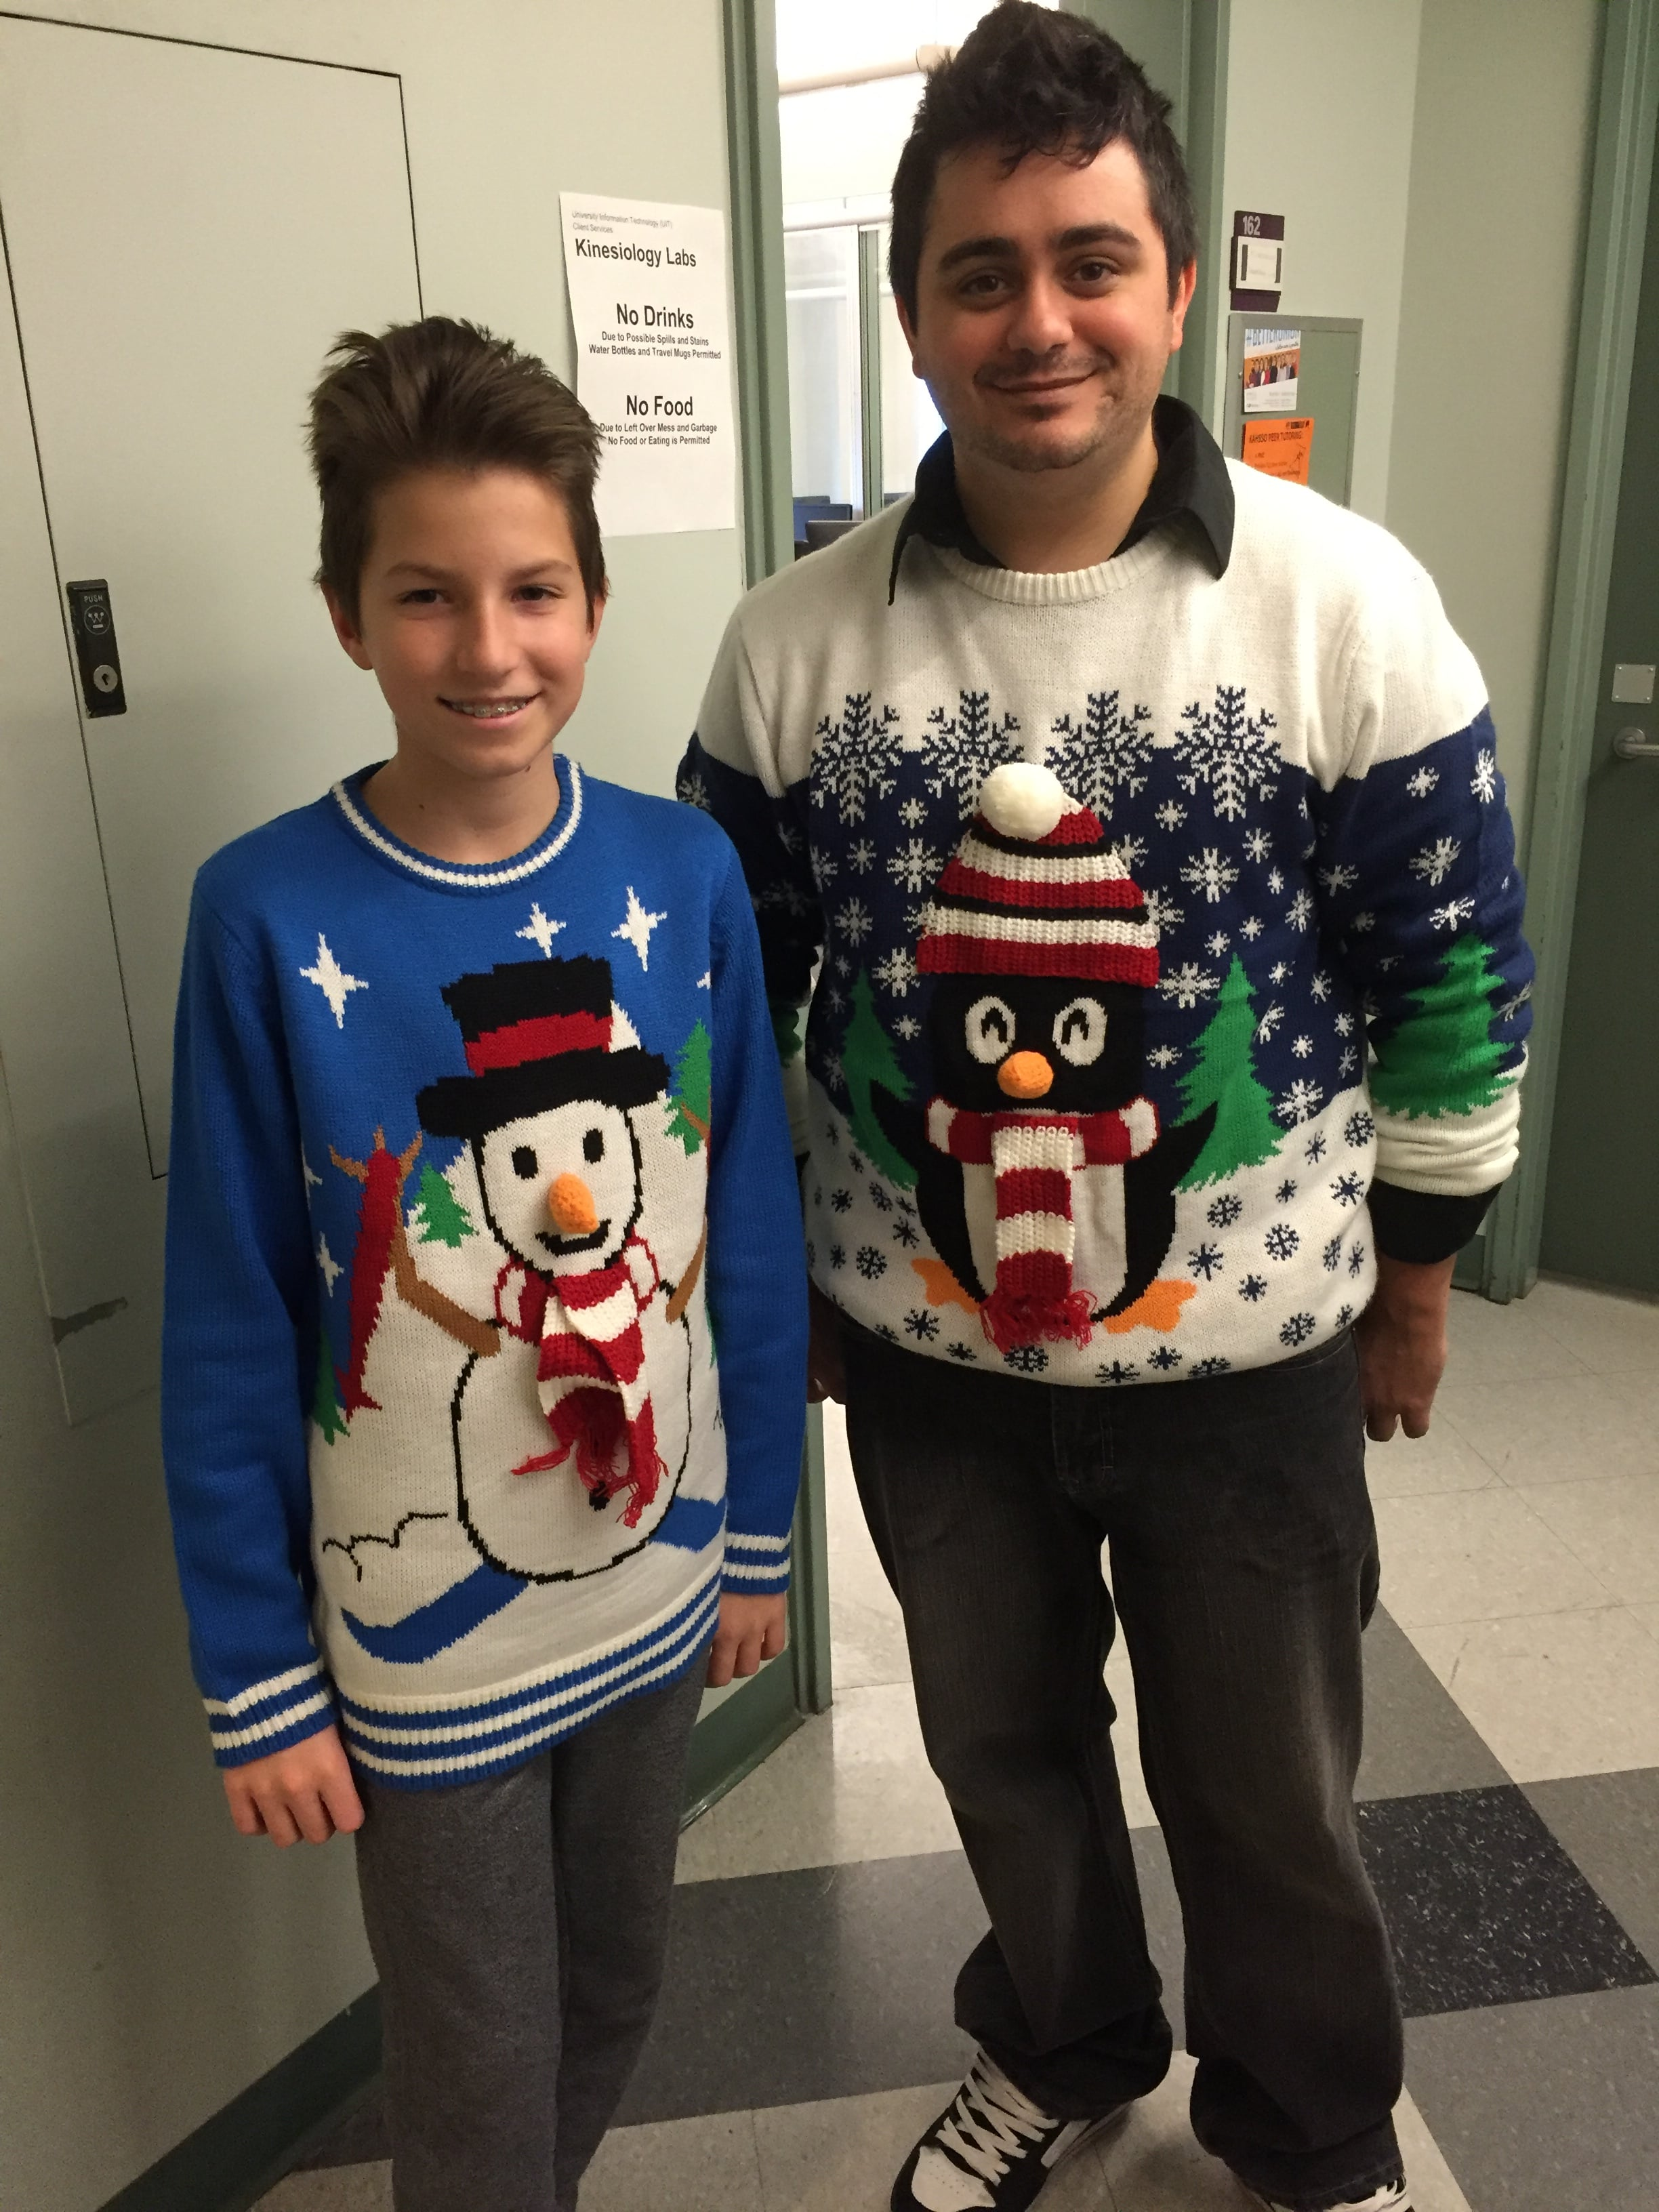 Volunteer and student wearing Christmas themed sweaters.